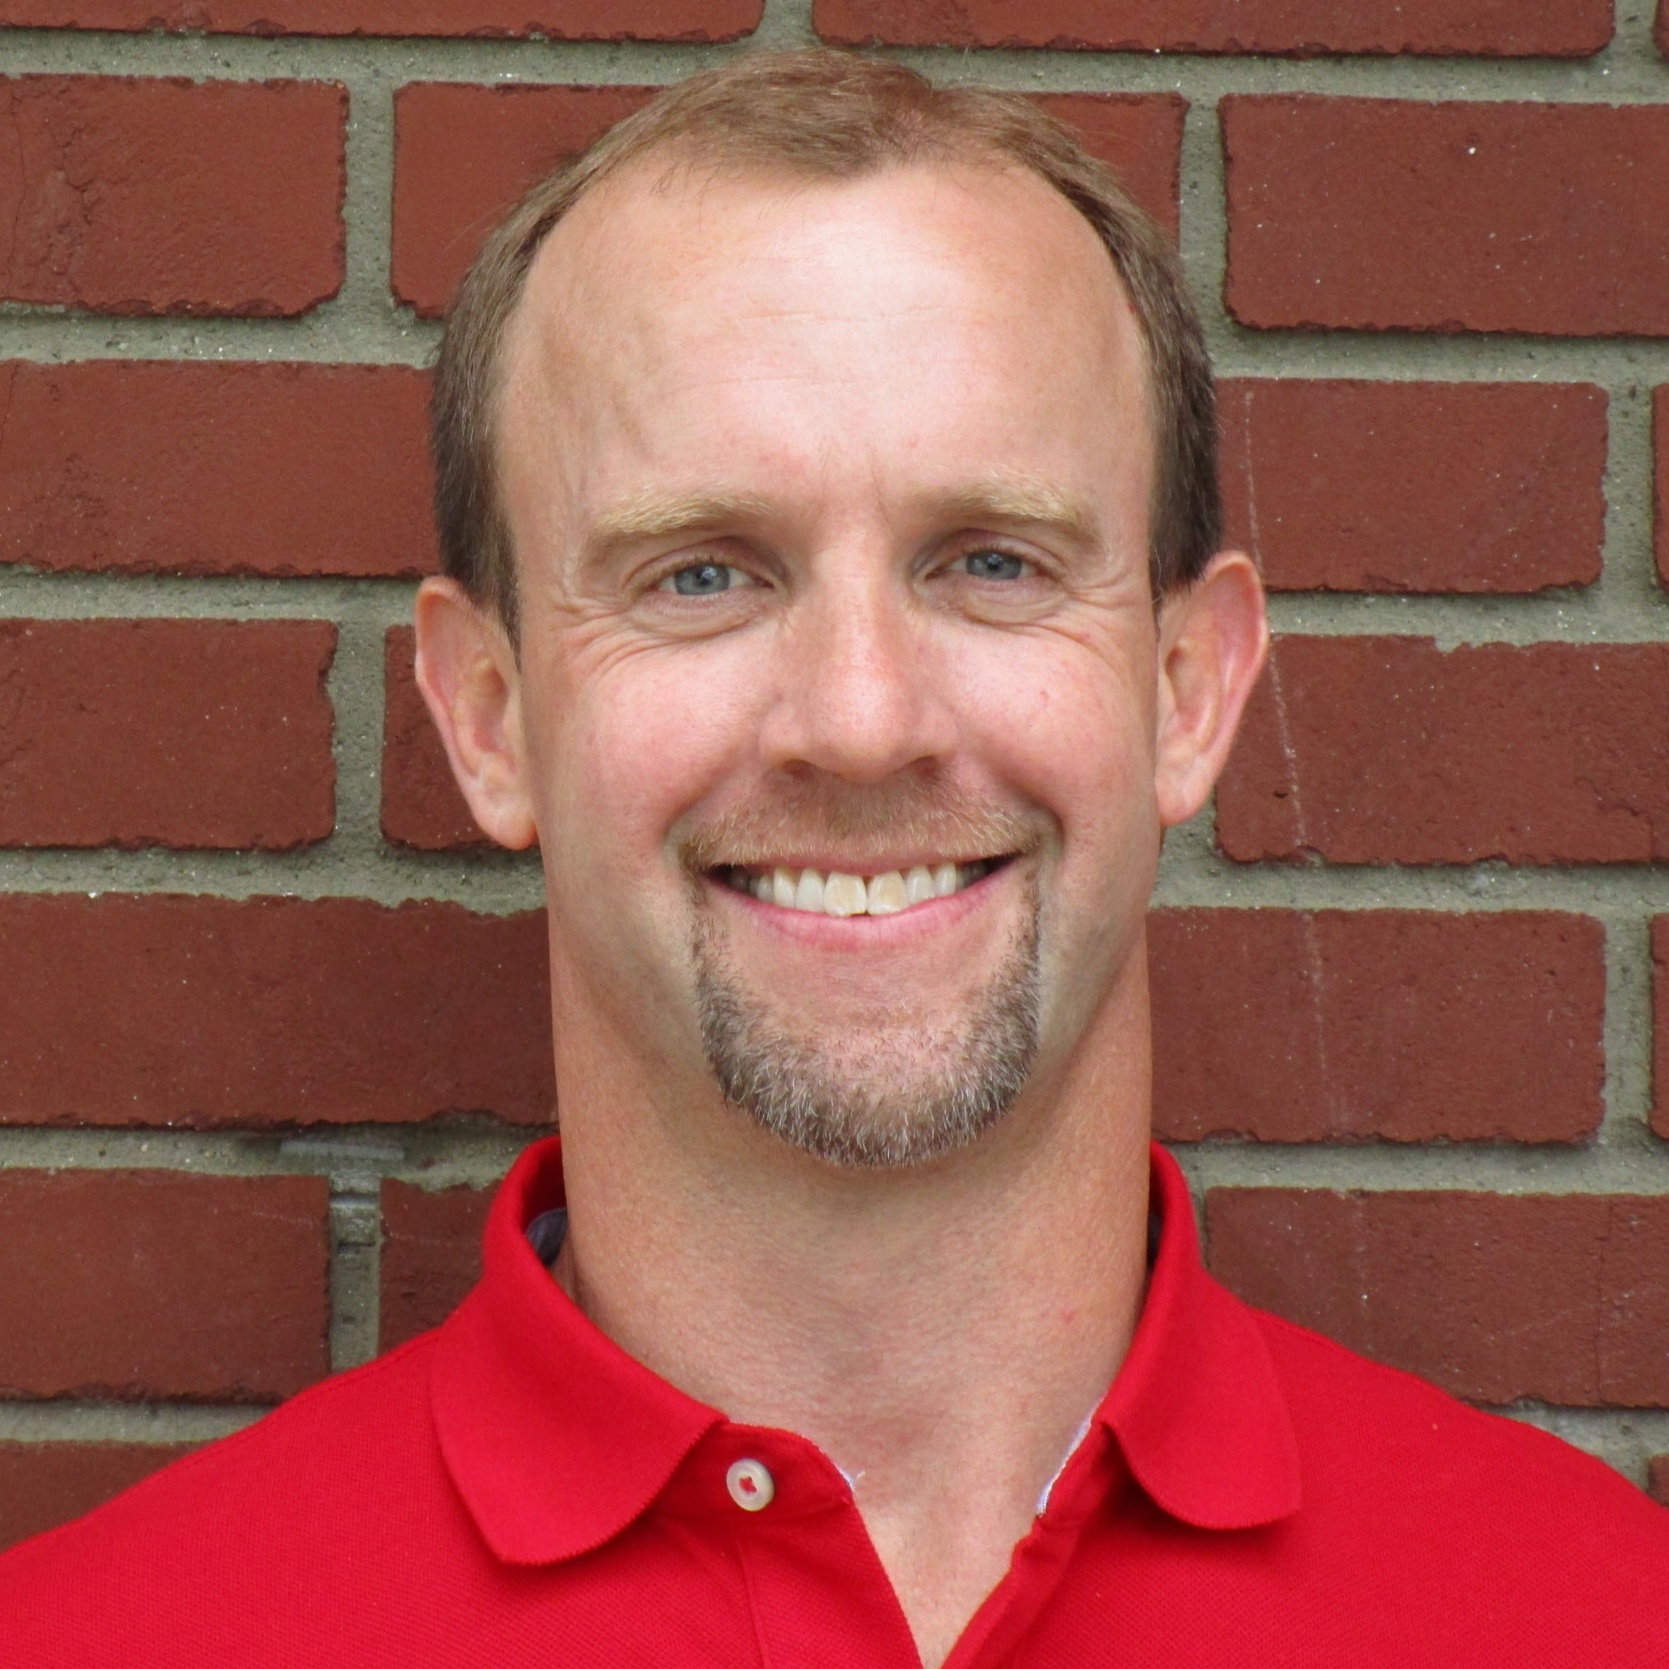 Dane Helsing - Pastor | ElderDane has served as the pastor of Beacon Community Church since it began in 2015. He is married to Laura and they have two energetic children, Cecile and Soren. Dane enjoys spending time with his family and doing just about anything outside—running, biking, hiking, basketball, and gardening.